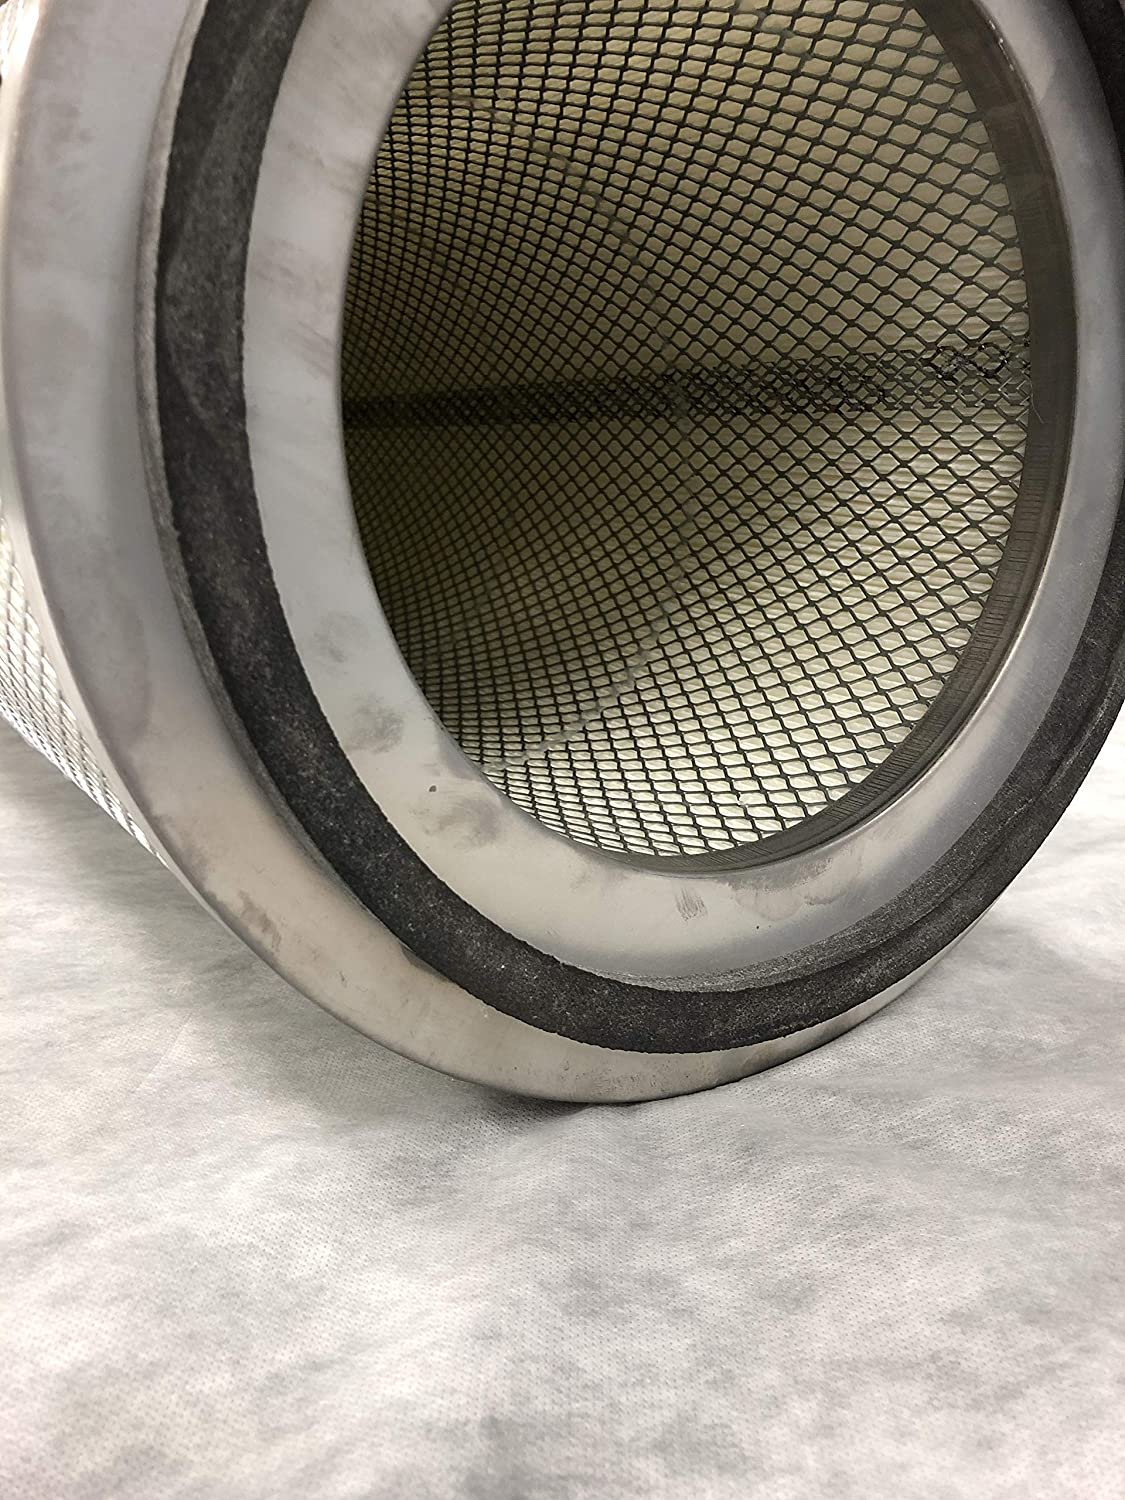 26 OD Height Nanofiber FR 12.75 ID Open-Closed pans 0.540 BH Dust Collector Filter 8.375